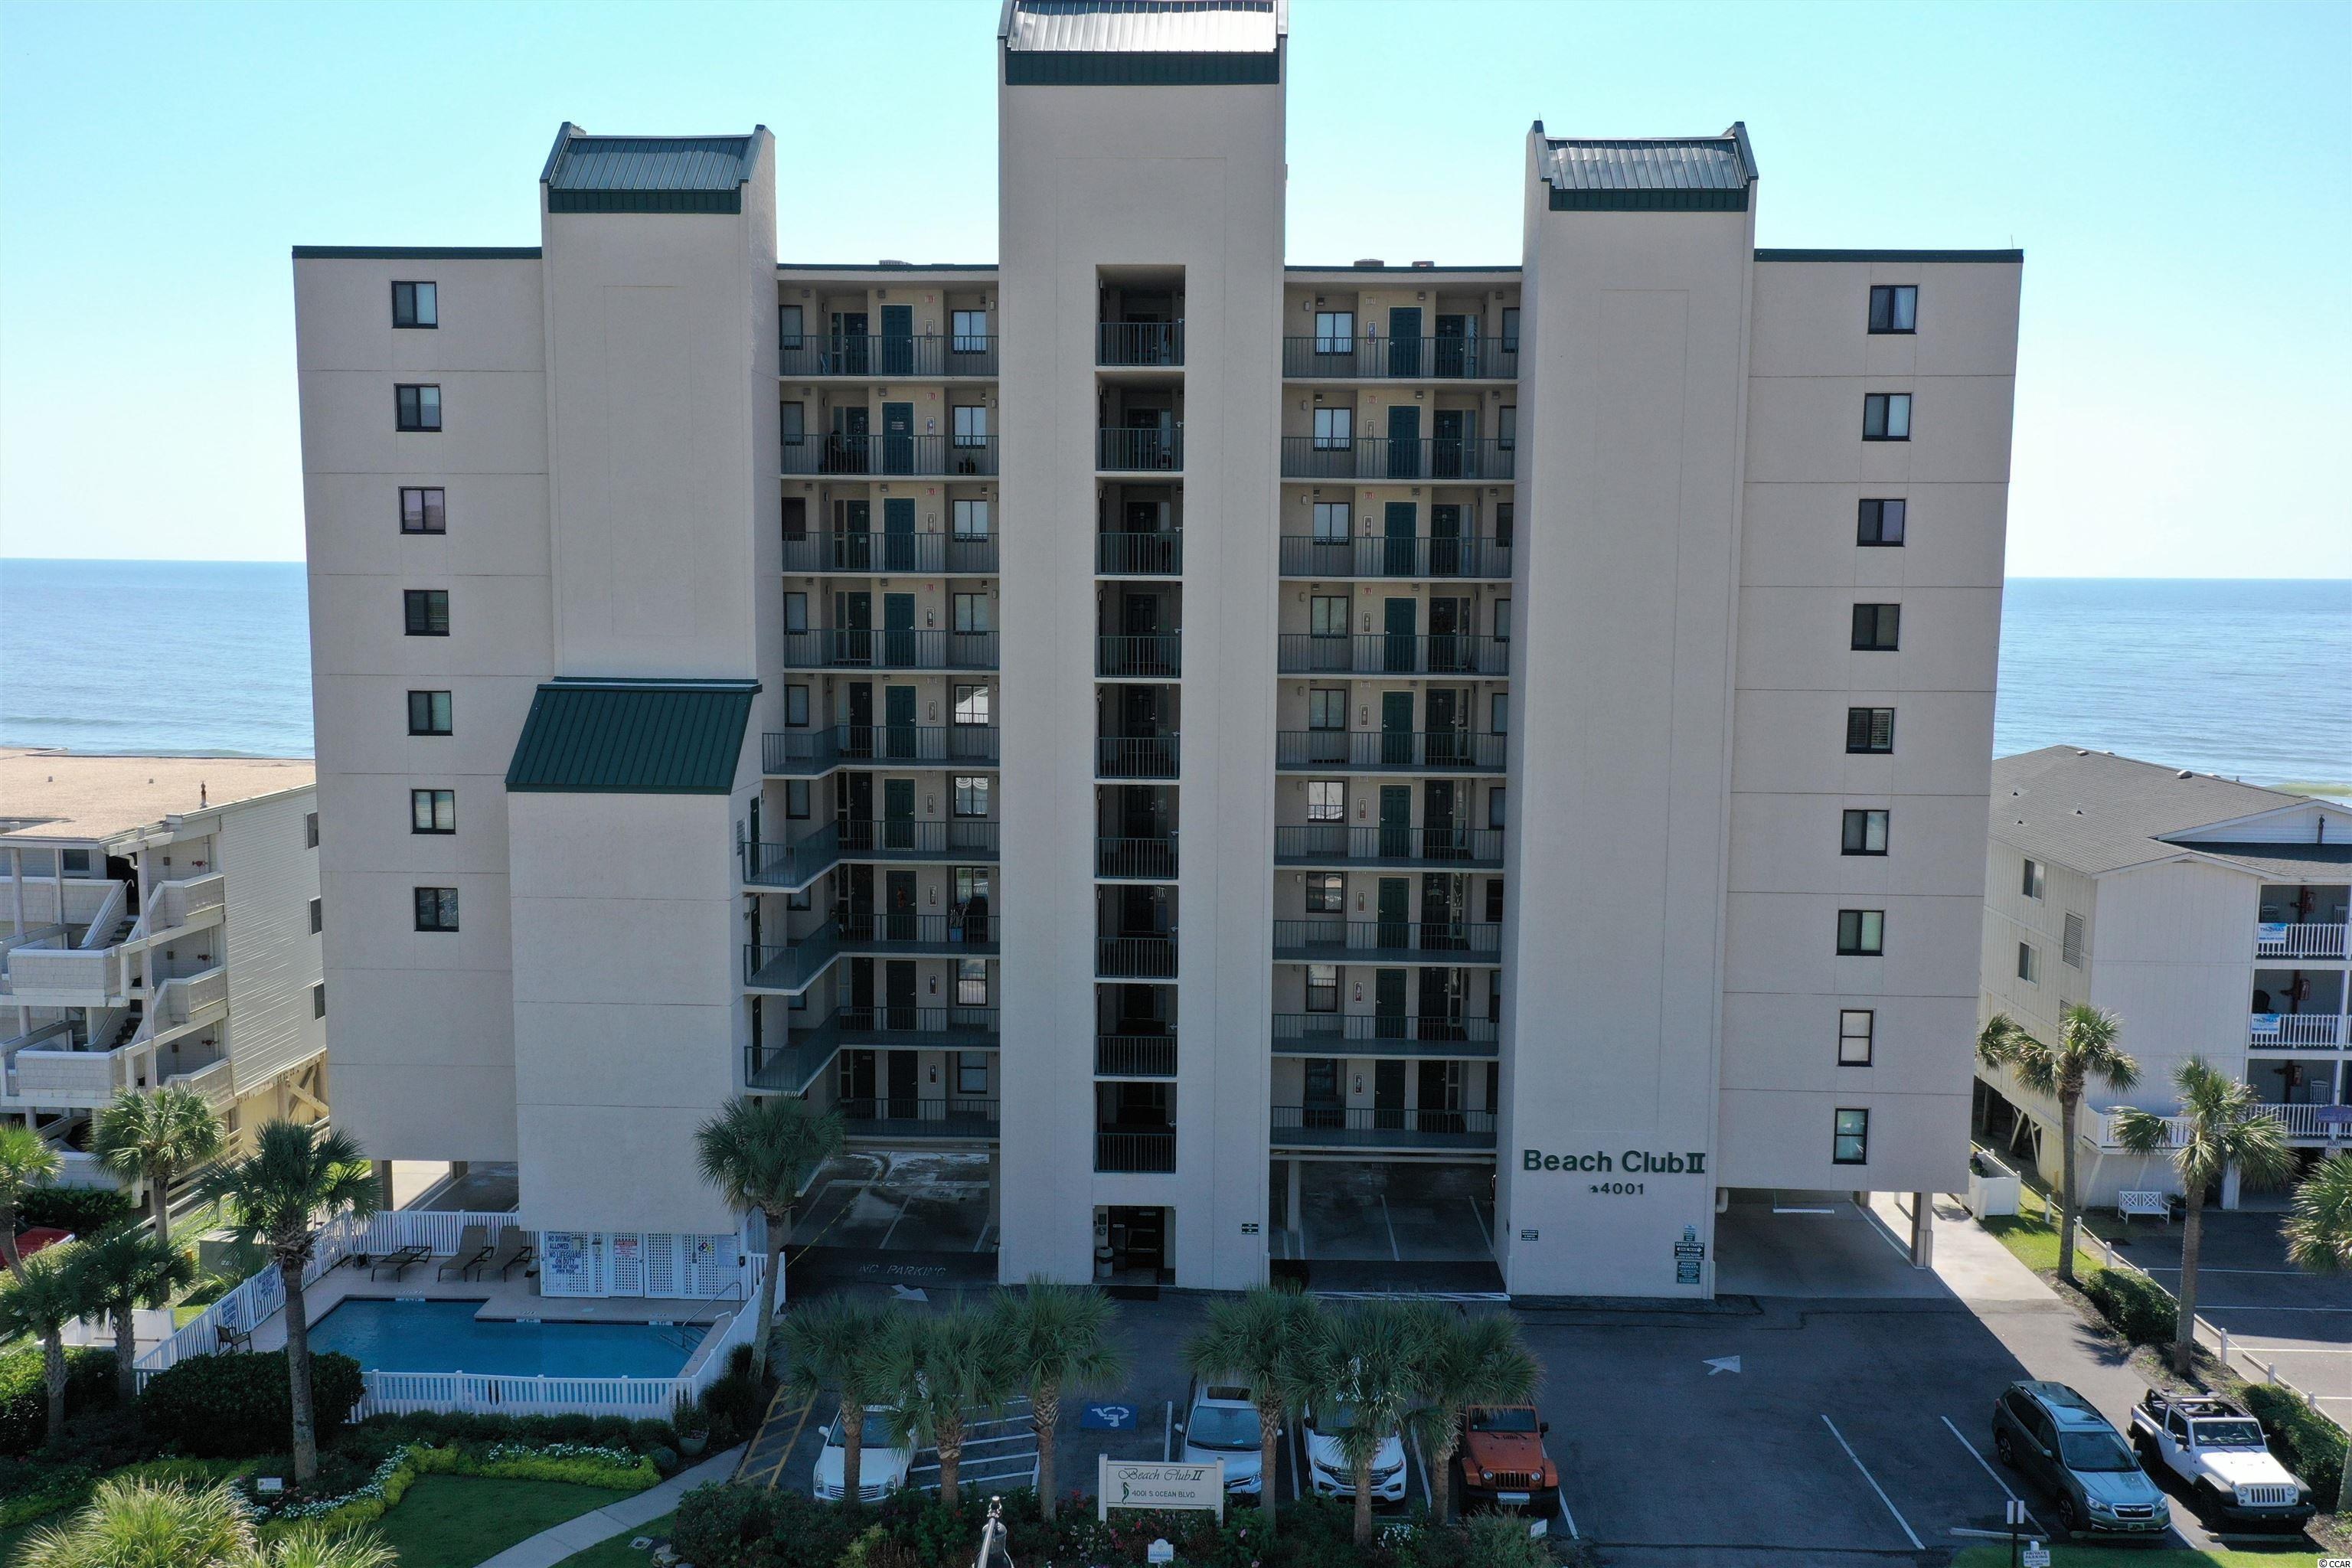 Now available on the 4th floor of Beach Club ll, very spacious direct oceanfront 3BR/3BA condo located in the Windy Hill section of North Myrtle Beach. Sip your morning coffee, and watch the dolphins swim by on the Huge 28'  balcony with access from the living room and the master bedroom that boast impressive views of the Atlantic Ocean. Open floor plan that flows well from kitchen to dinning area to living area. UNIT HAS NEW COUCH and CONSOLE Smaller building with only 45 units.-  2 Pools, deck area and BBQ area & covered parking.  Close to Barefoot Landing, golf courses, miniature golf, restaurants, shows, Main Street, lots of shopping, and all the Grand Strand has to offer. Or just relax at Beach Club II on the oceanfront.